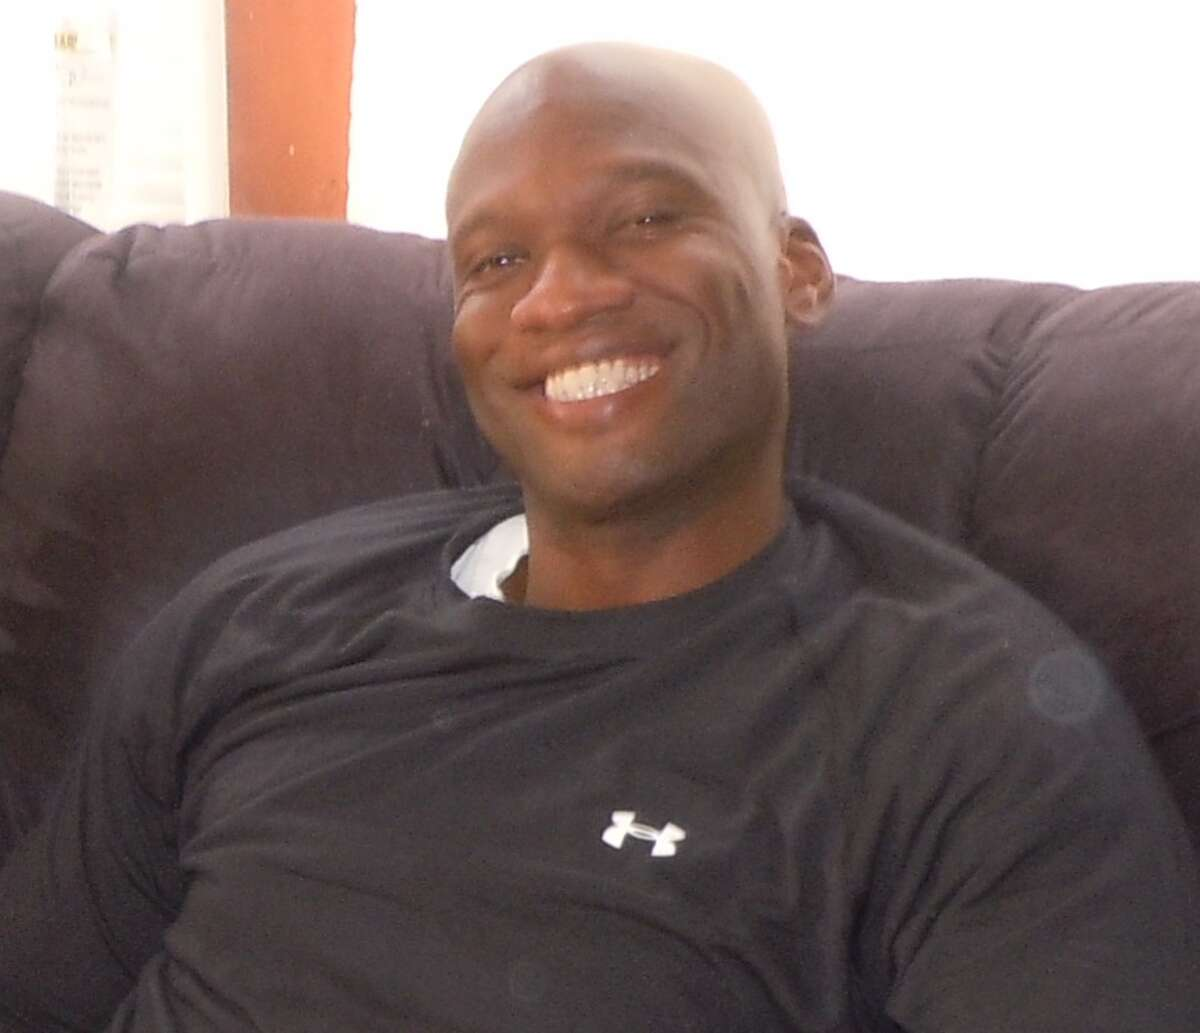 Aaron Alexis once worked near New York's World Trade Center, and friends say he assisted people injured during the Sept. 11 terror attacks.